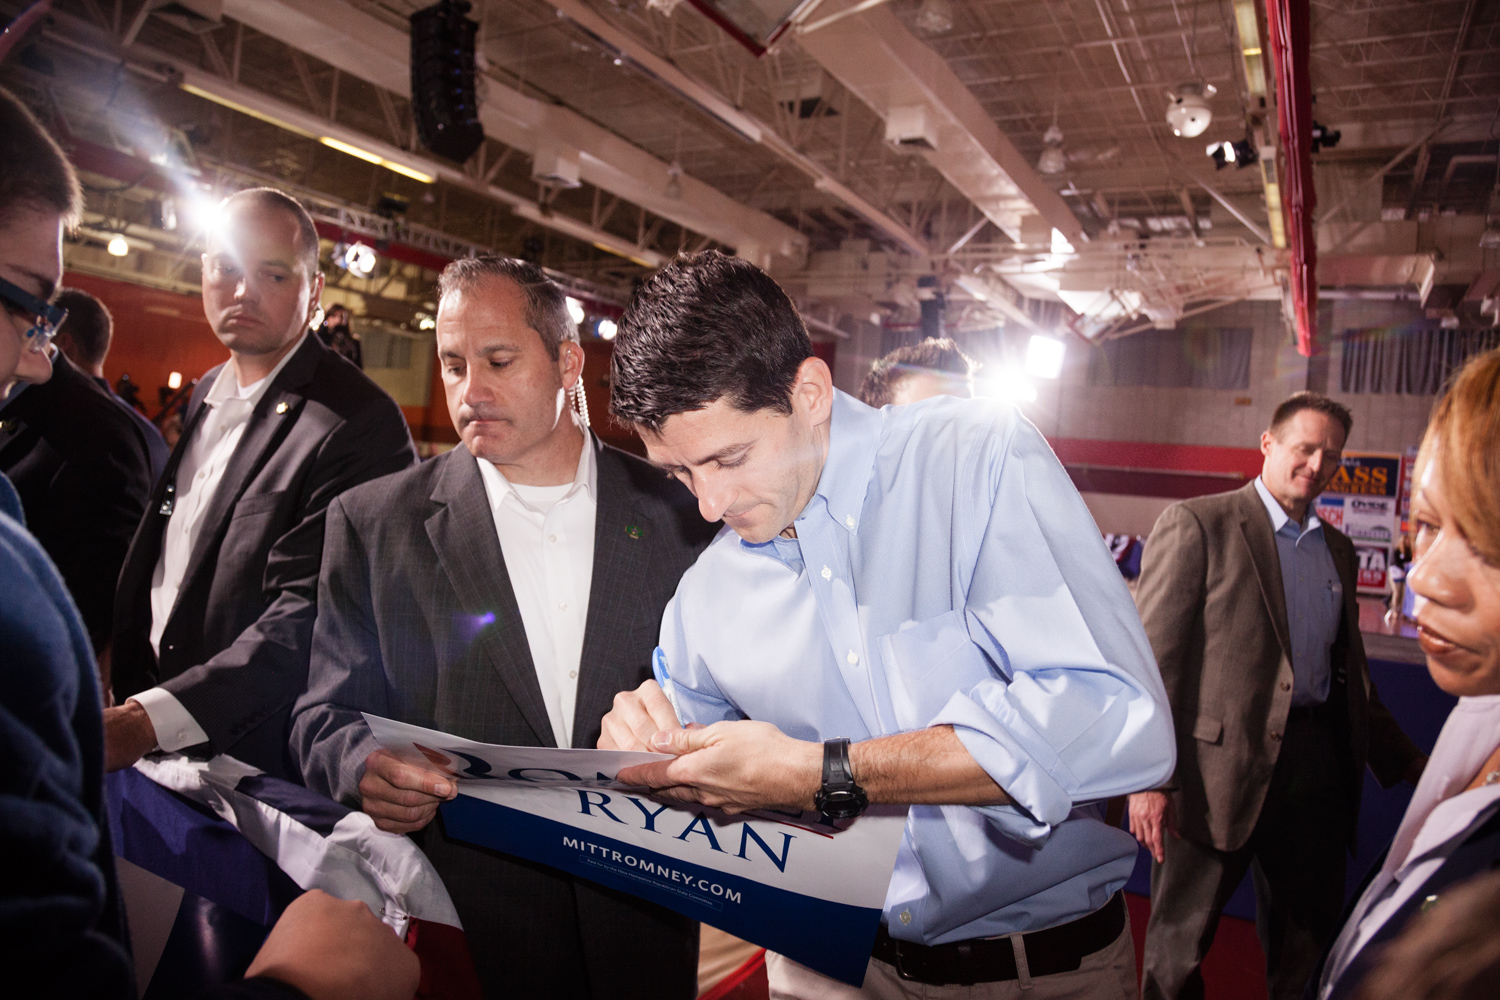 Paul Ryan signs an autograph at the  Earn It  rally in Derry, N.H. Sept. 29, 2012.